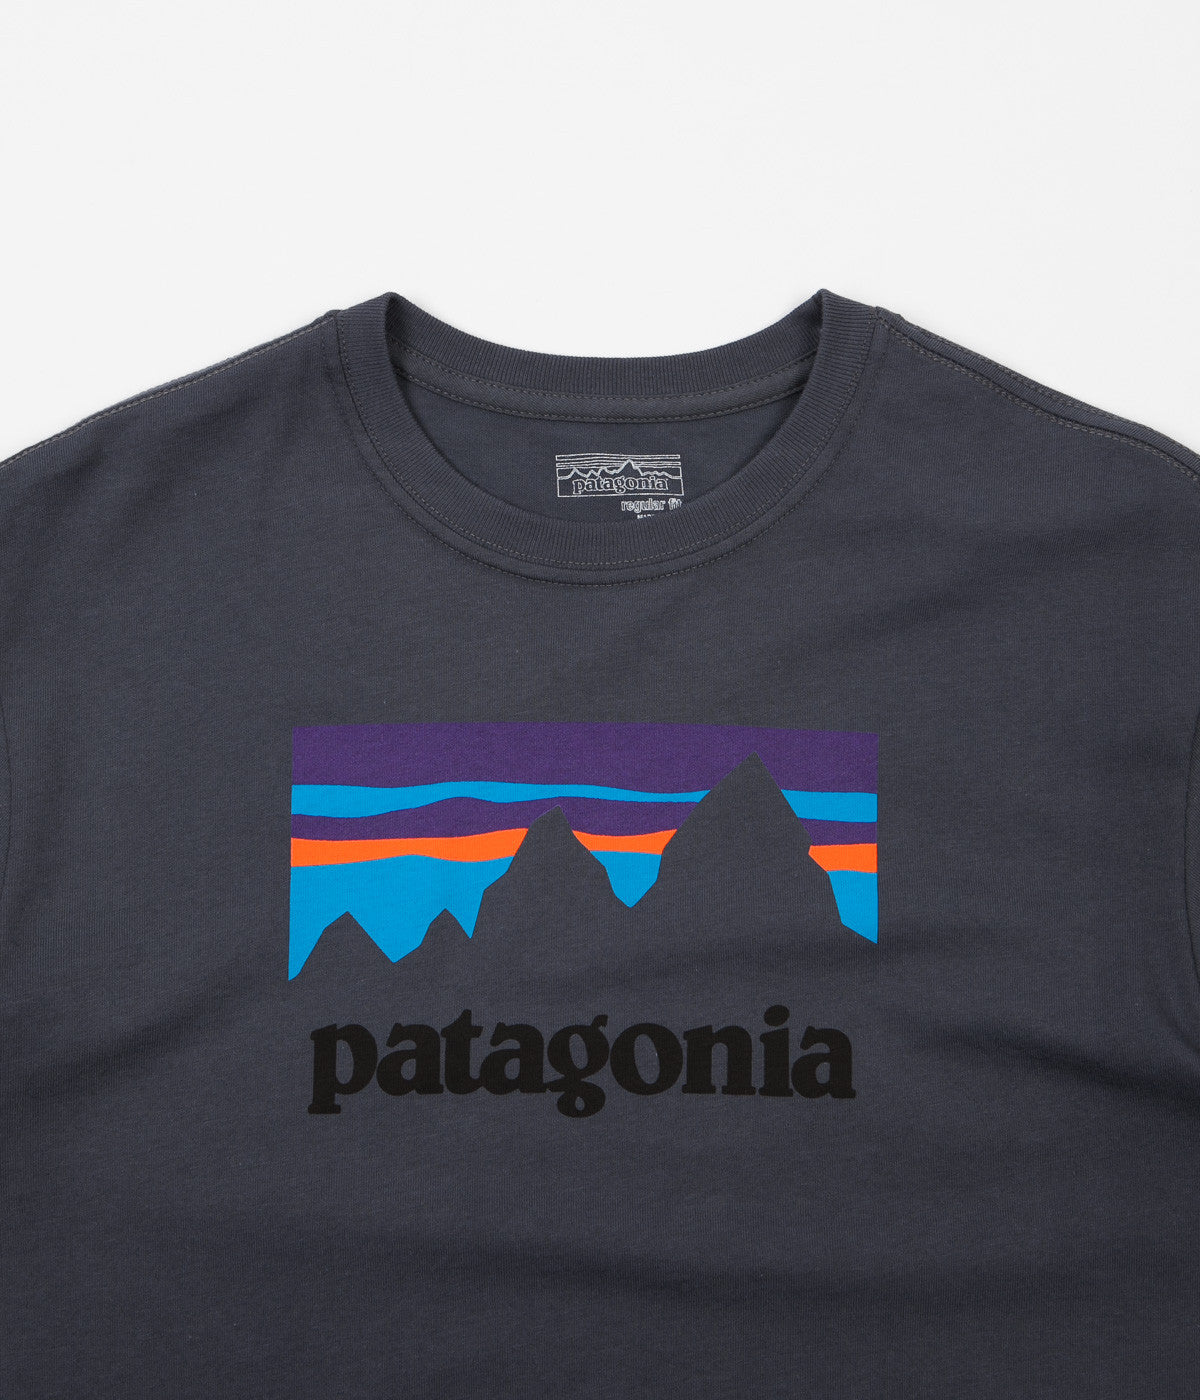 Patagonia Shop Sticker T-Shirt - Smolder Blue